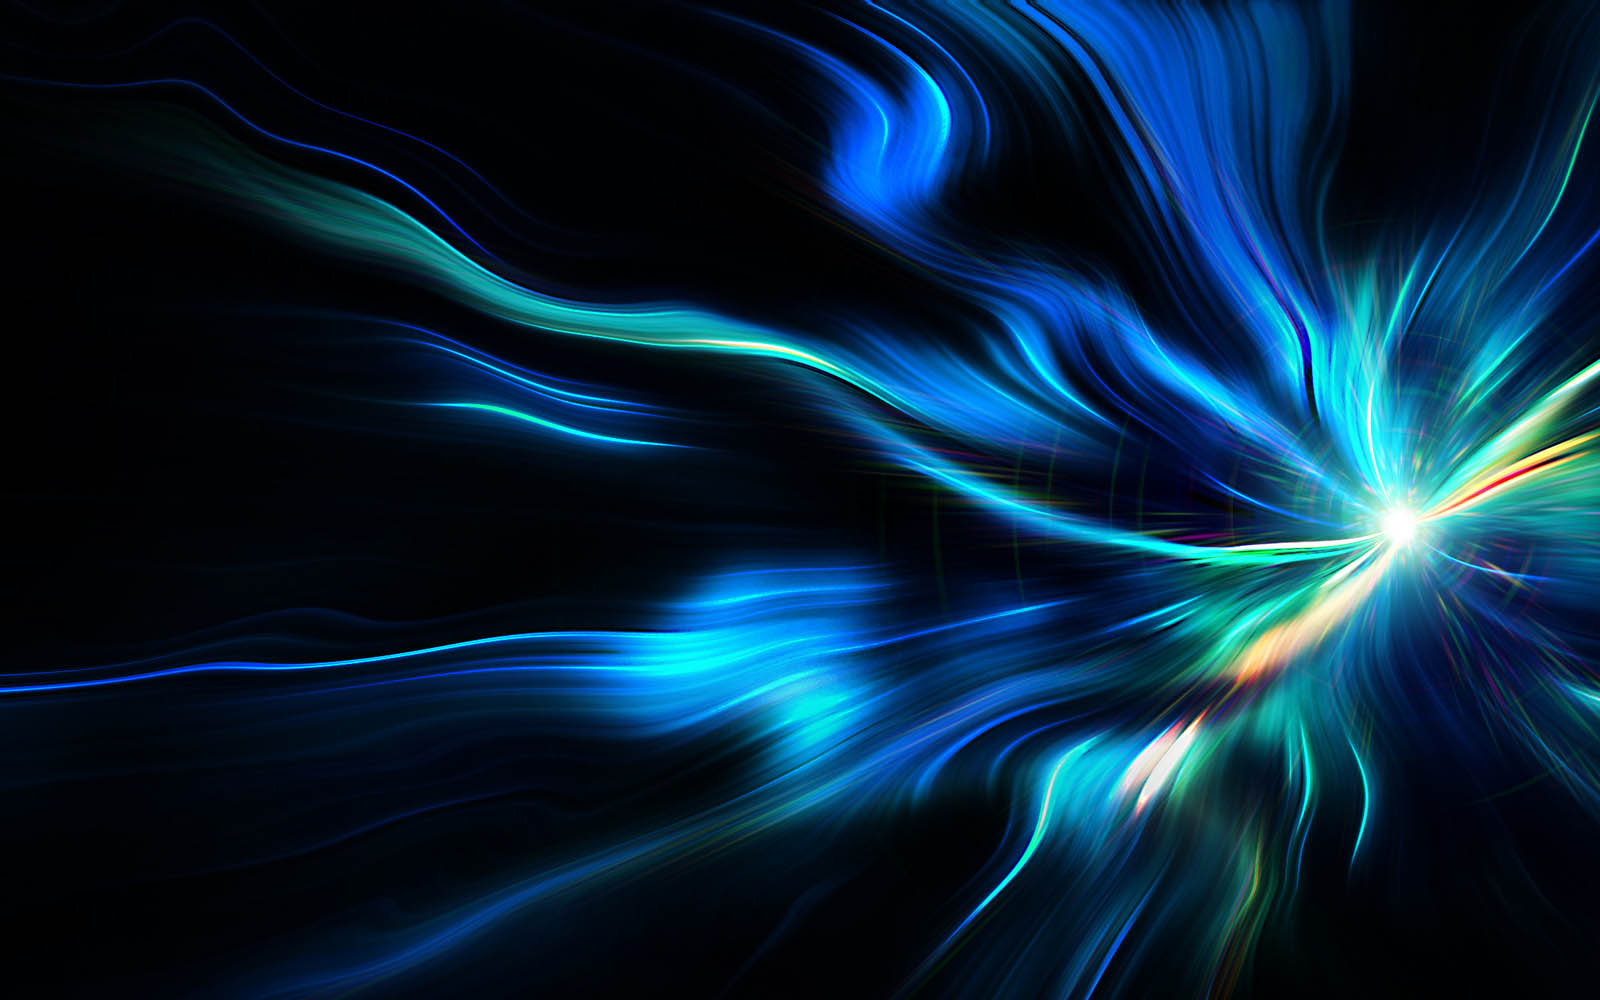 78+] 3d Wallpaper For Computer on WallpaperSafari